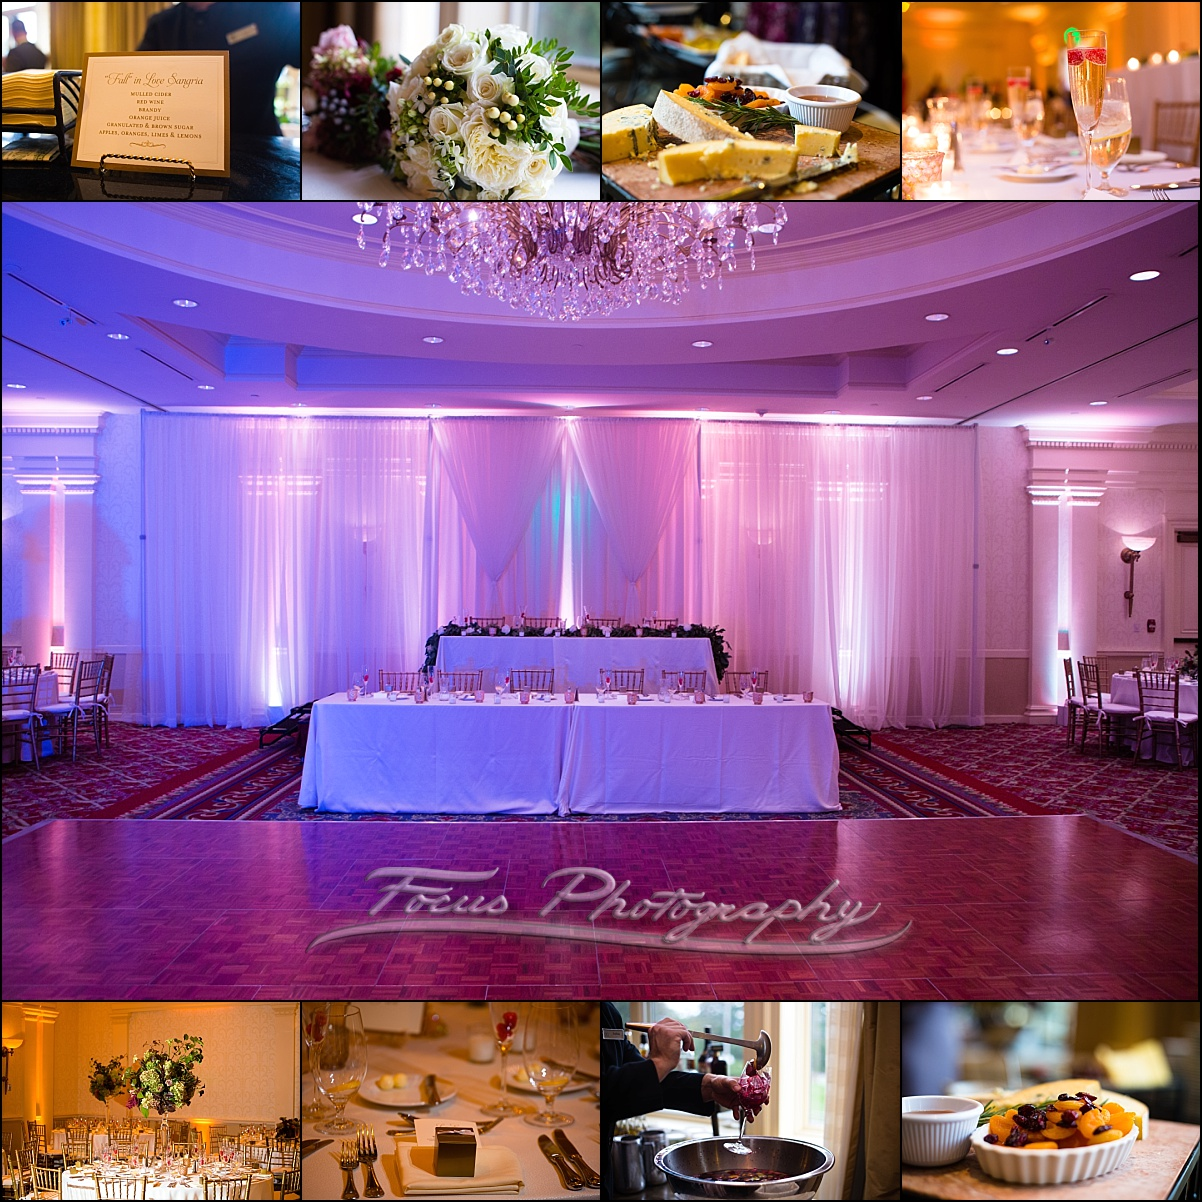 Wedding Reception Venues In Portsmouth: The Wentworth Wedding Of Lindsey And Eric